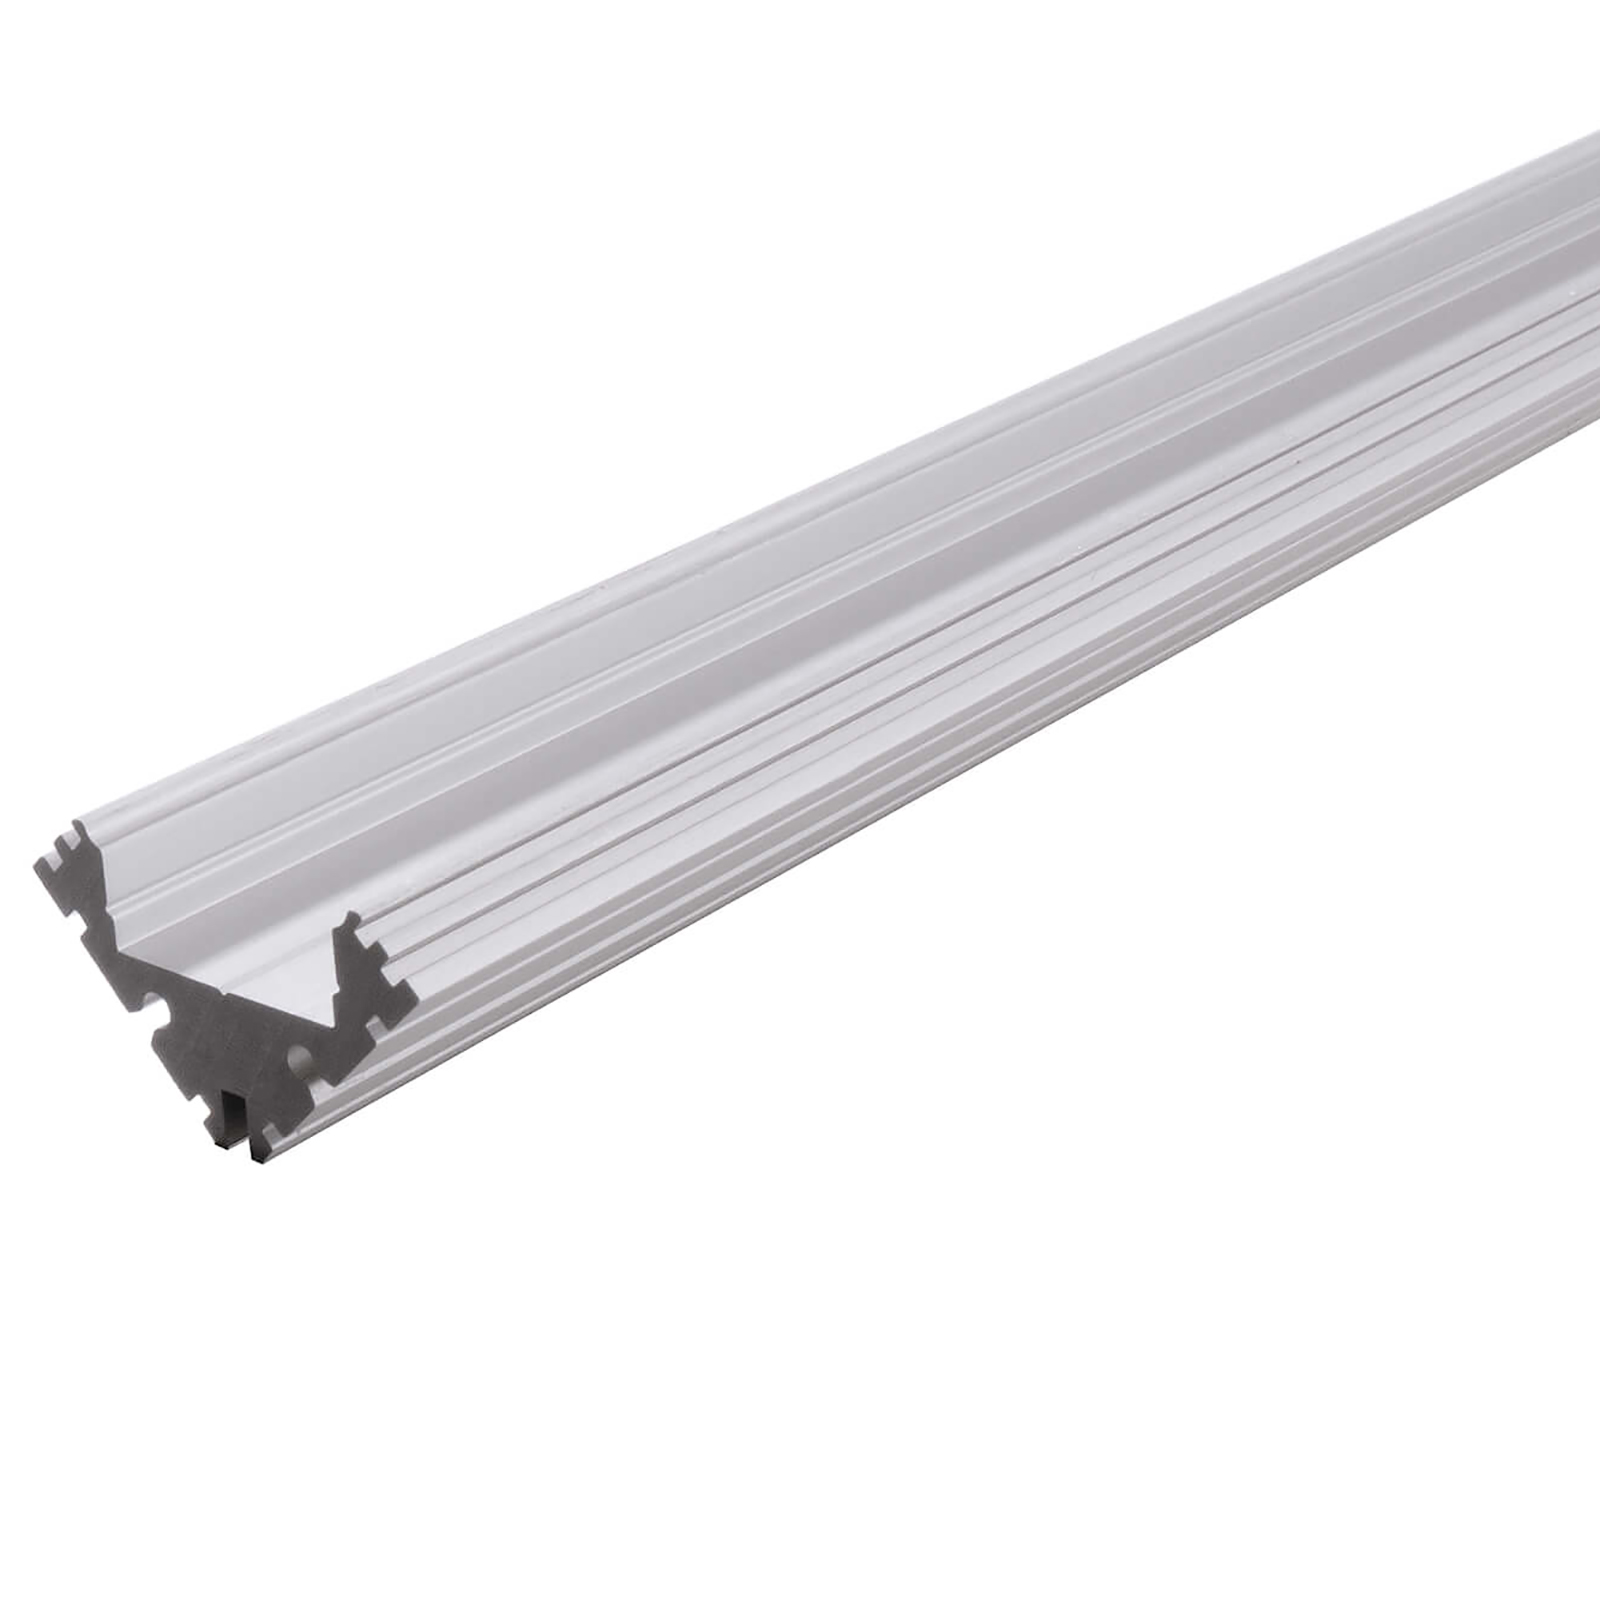 Profile recessed aluminium corner EV strips LED strip profiled bar light corner